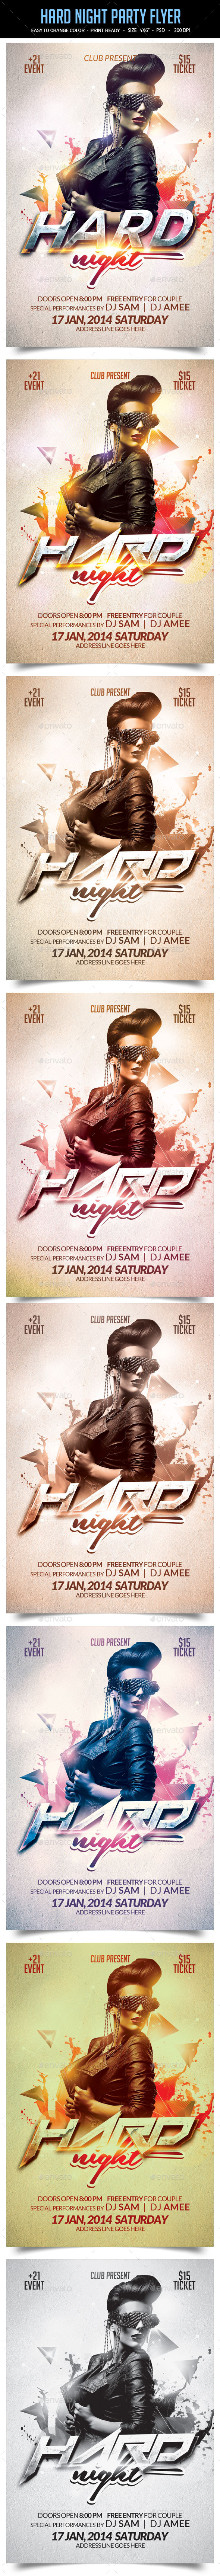 Hard Night Party Flyer - Clubs & Parties Events